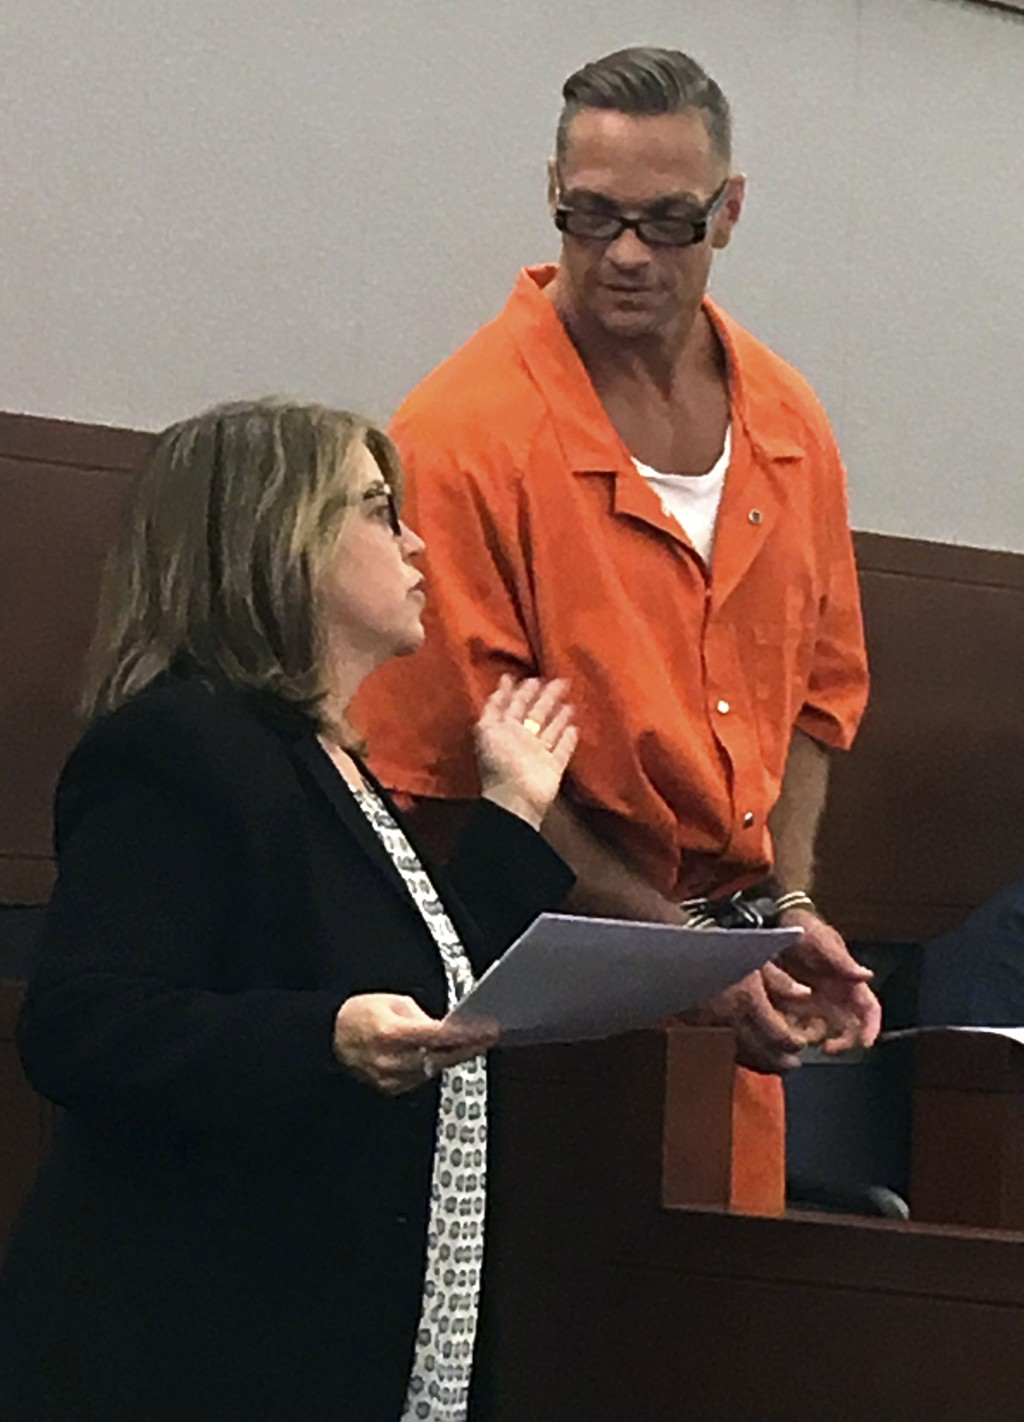 FILE - In this Aug. 17, 2017, file photo, Nevada death row inmate Scott Dozier, right, confers with Lori Teicher, a federal public defender involved i